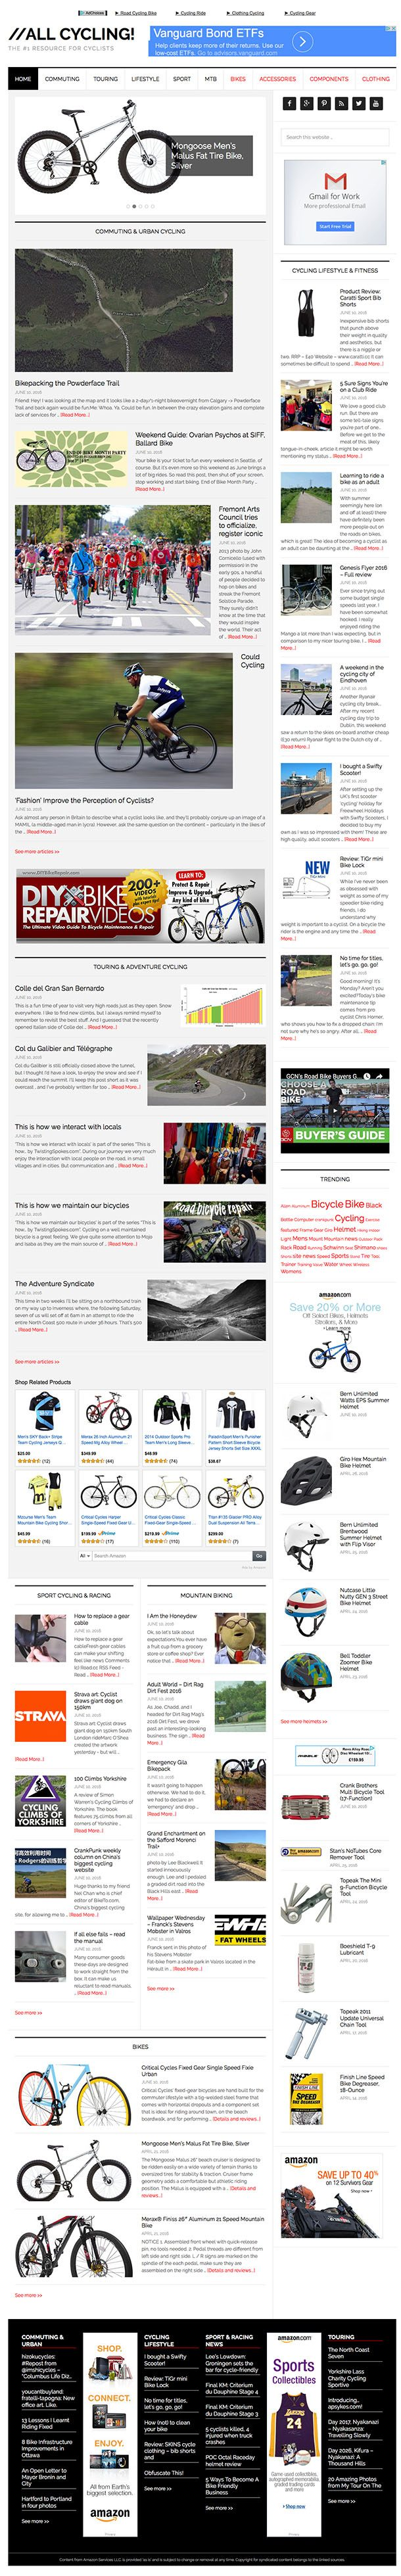 _ALL_CYCLING!_The_#1_resource_for_cyclists copy